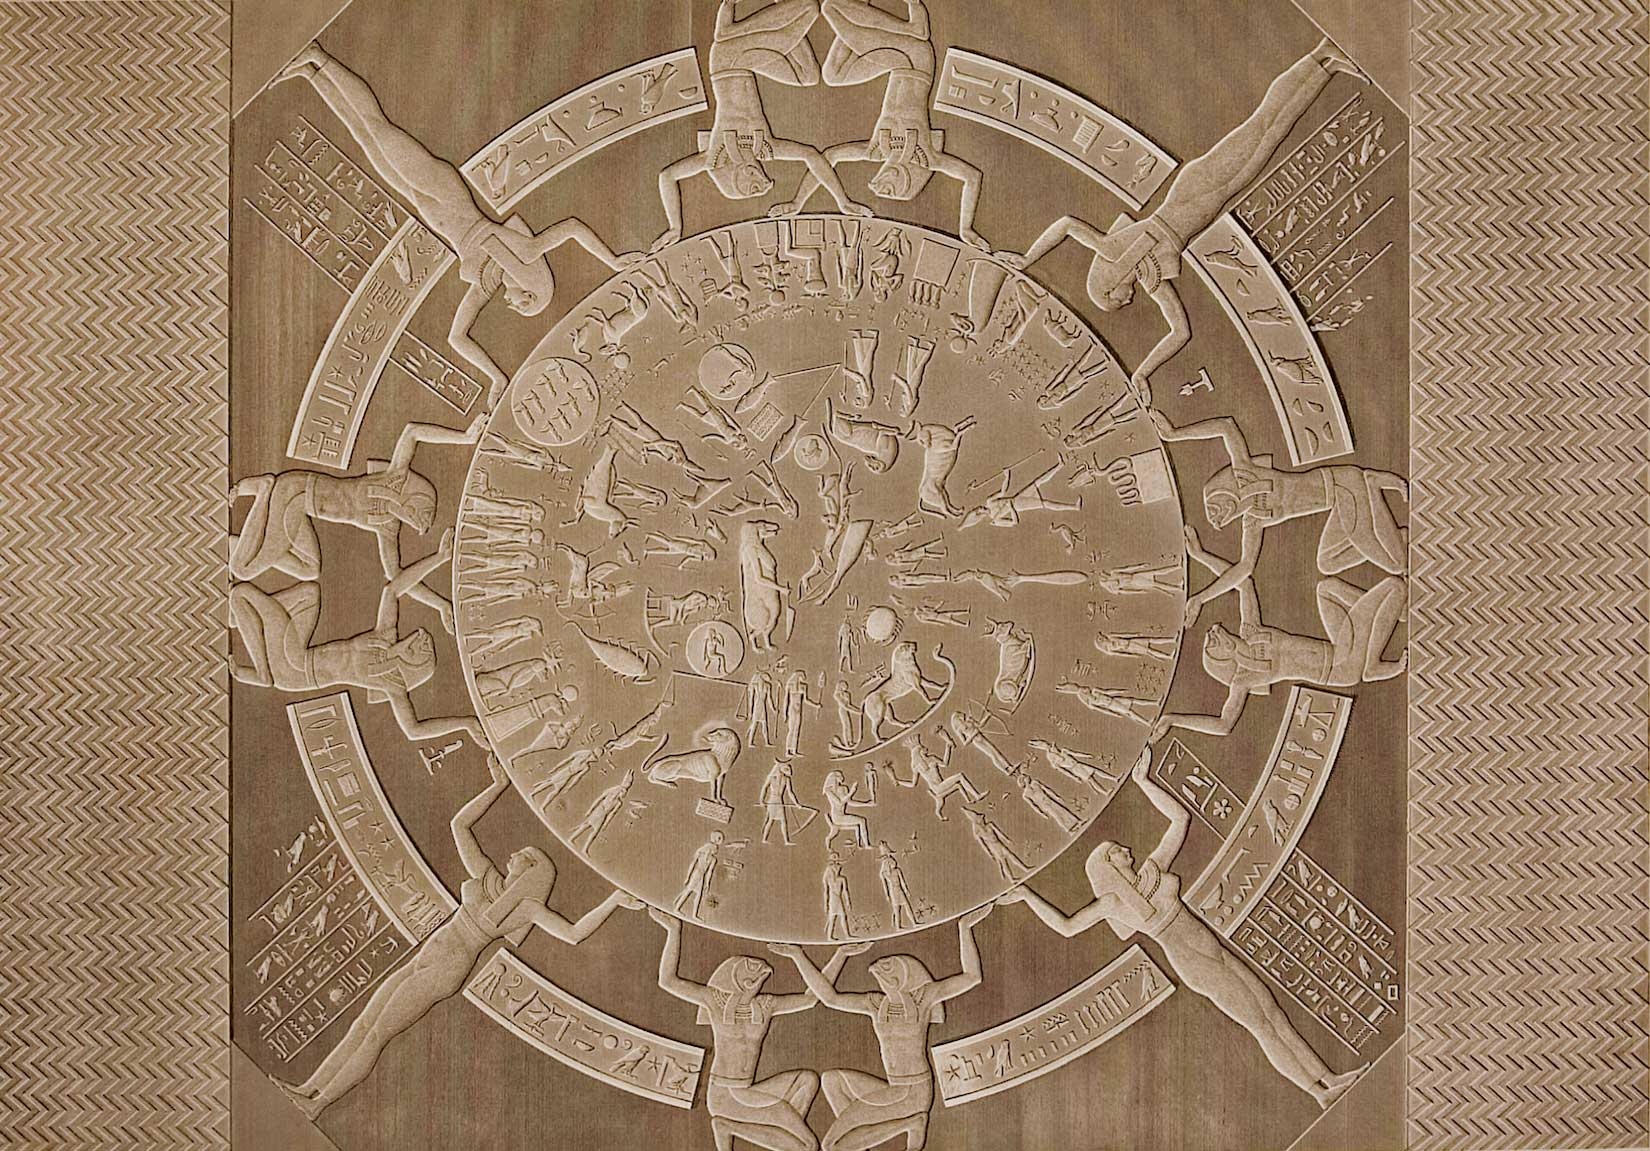 Zodiacal ceiling in the  pronaos  of the chapel of Osiris in the Temple of Hathor, Dendera, Egypt (50 BCE).